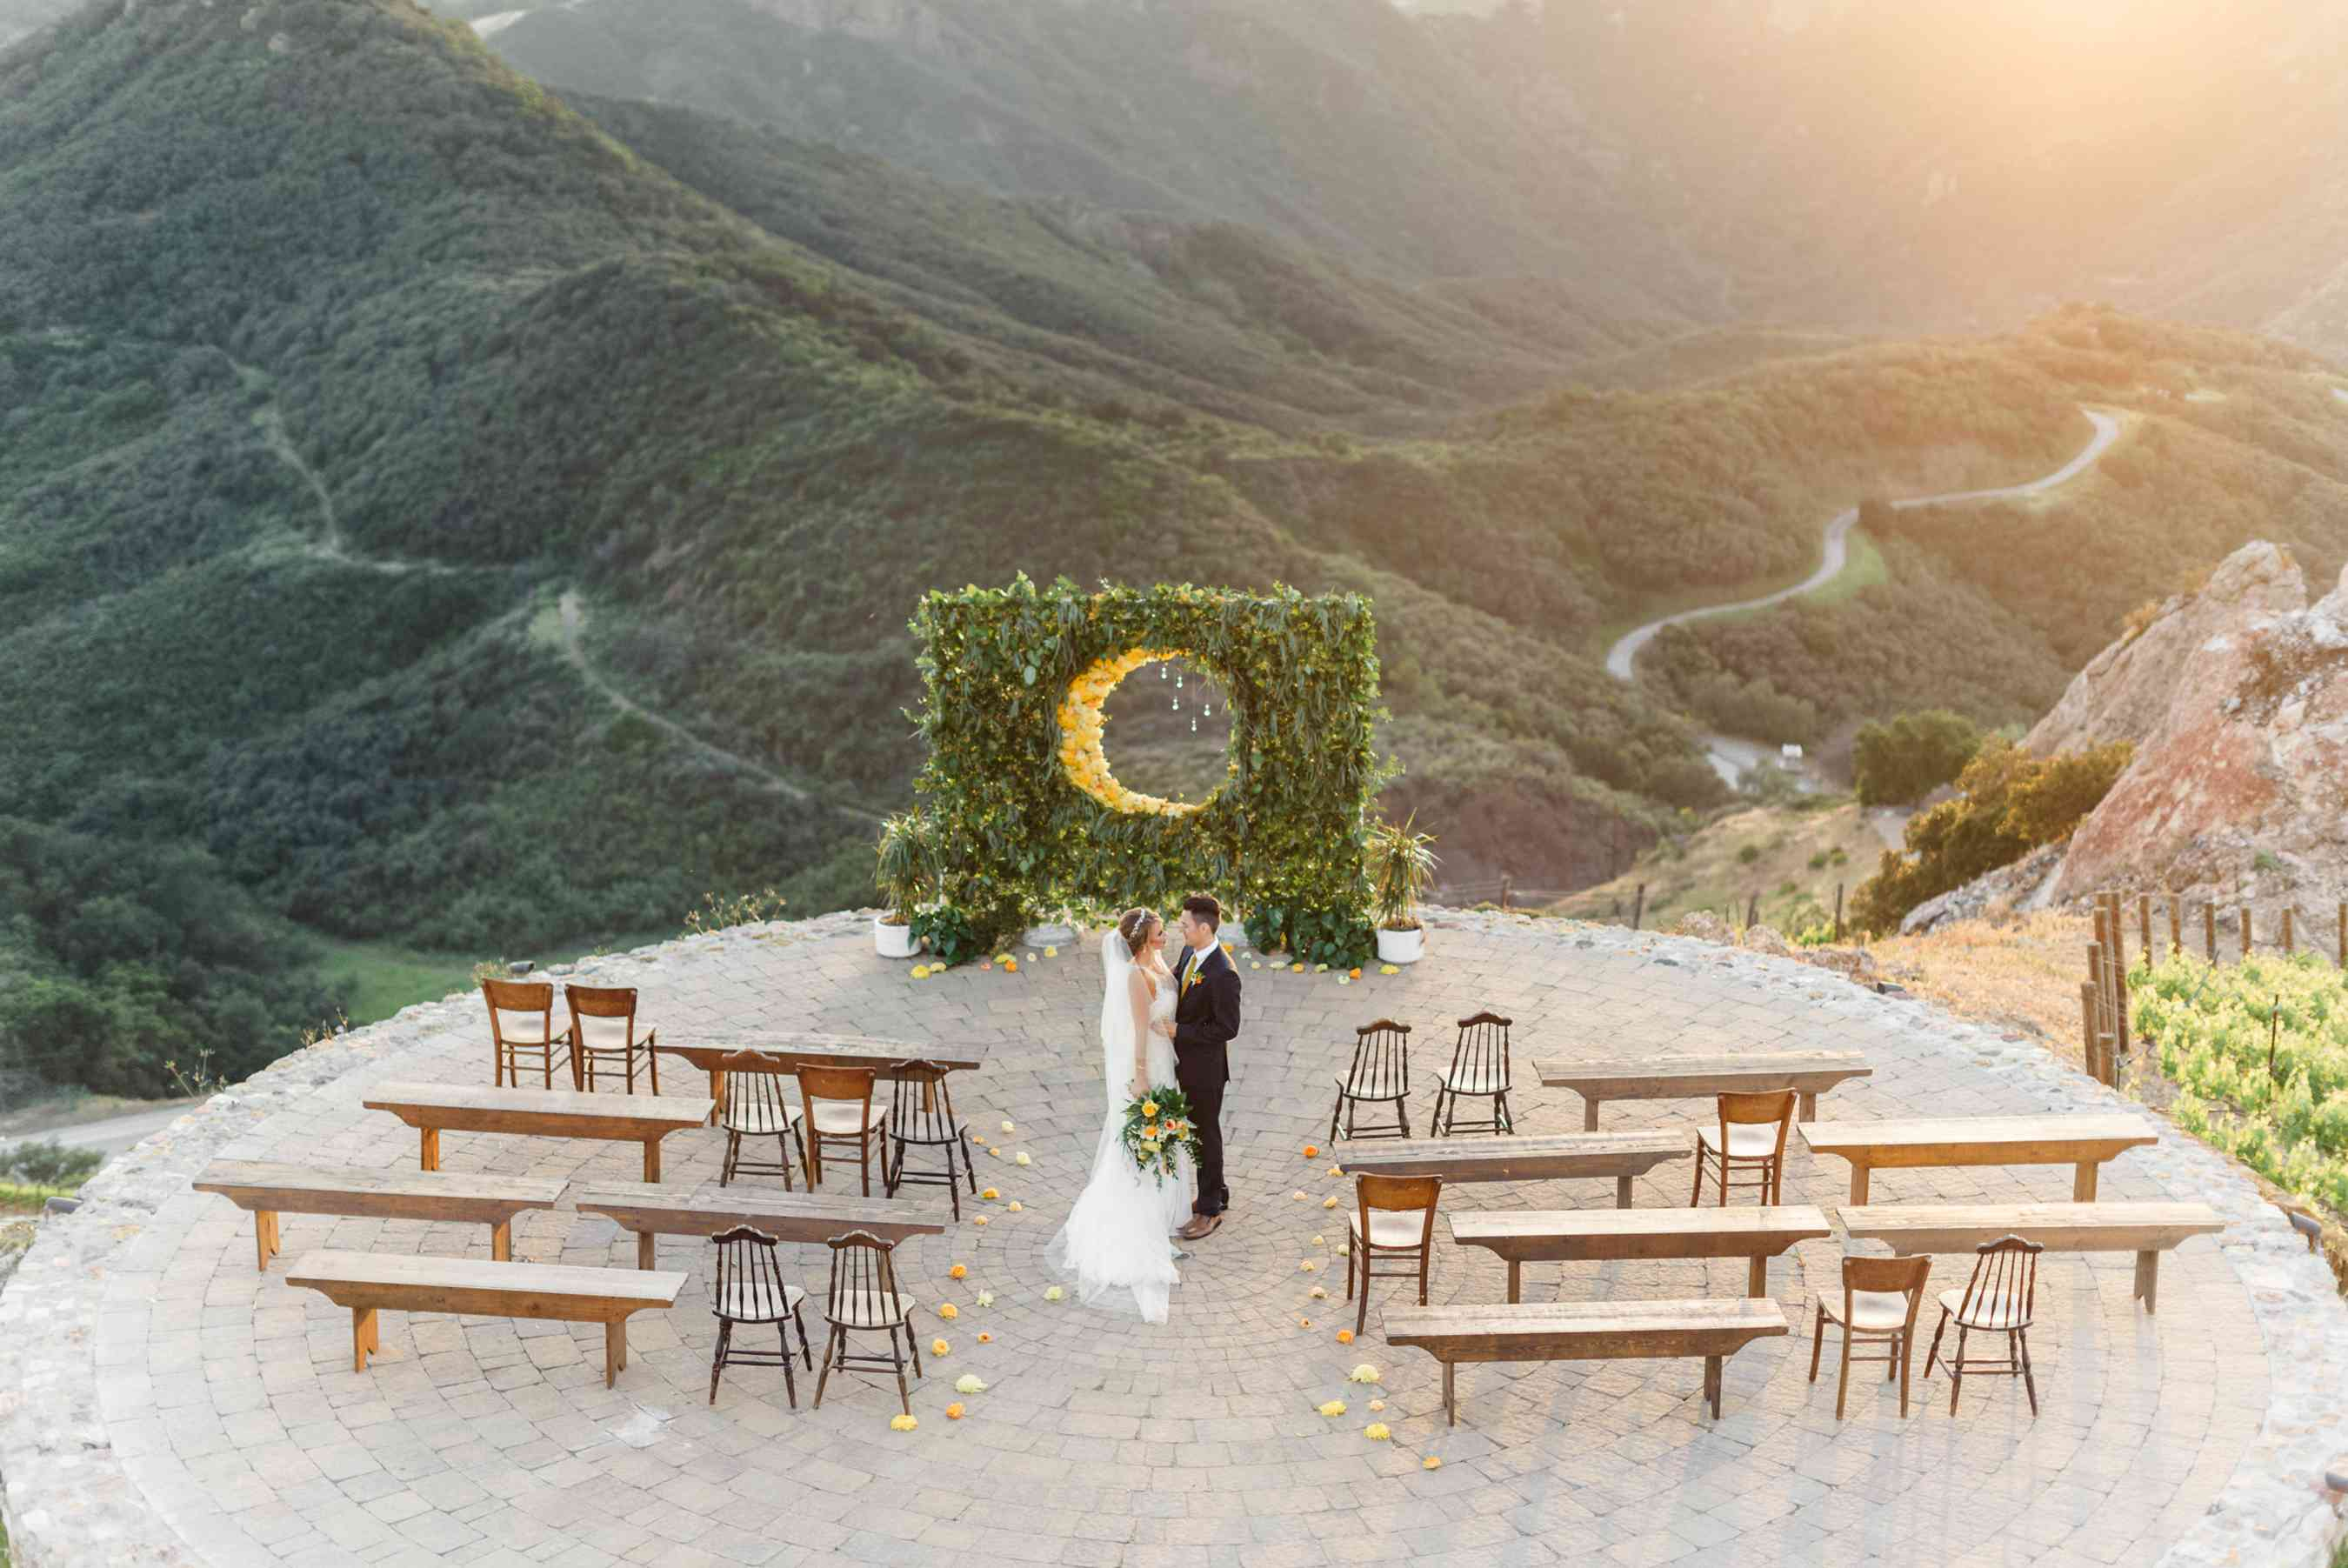 Wedding ceremony with mountain landscape backdrop